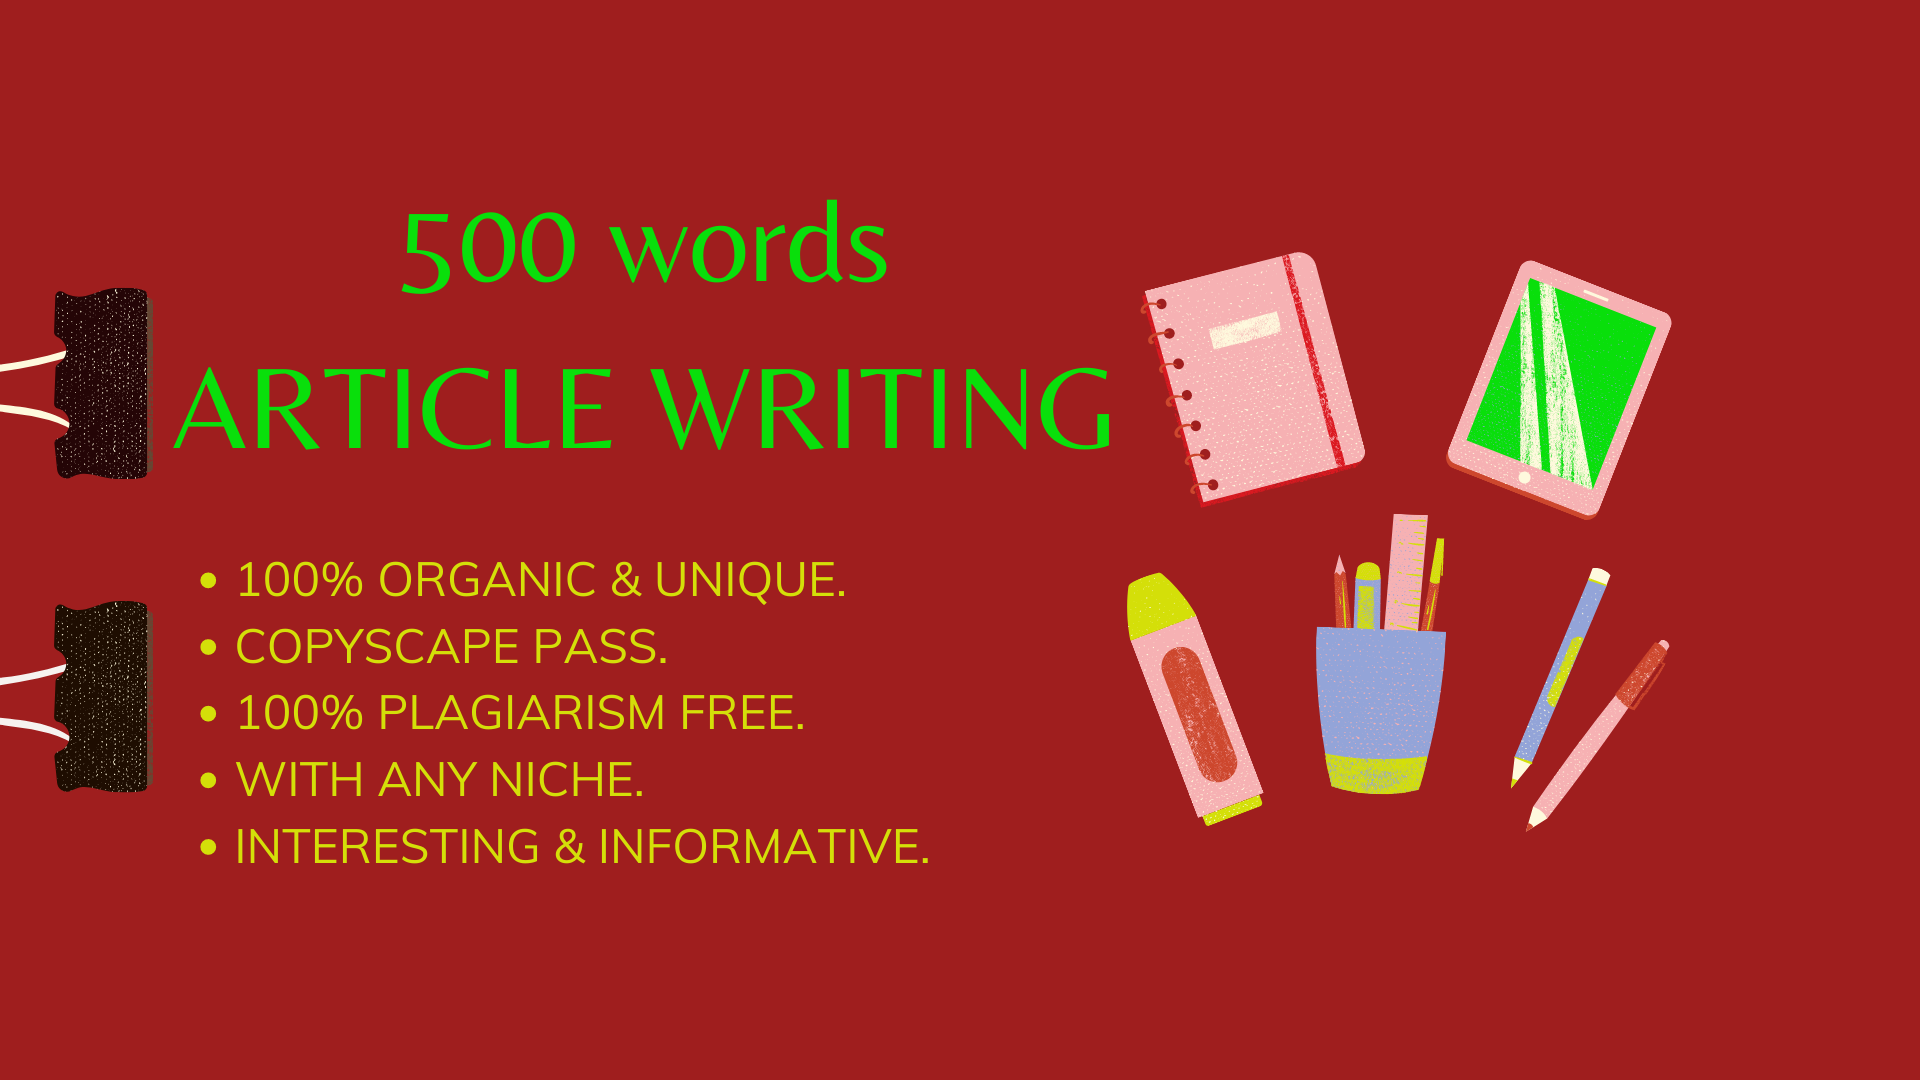 I will write 500 words professional article/content on any topic